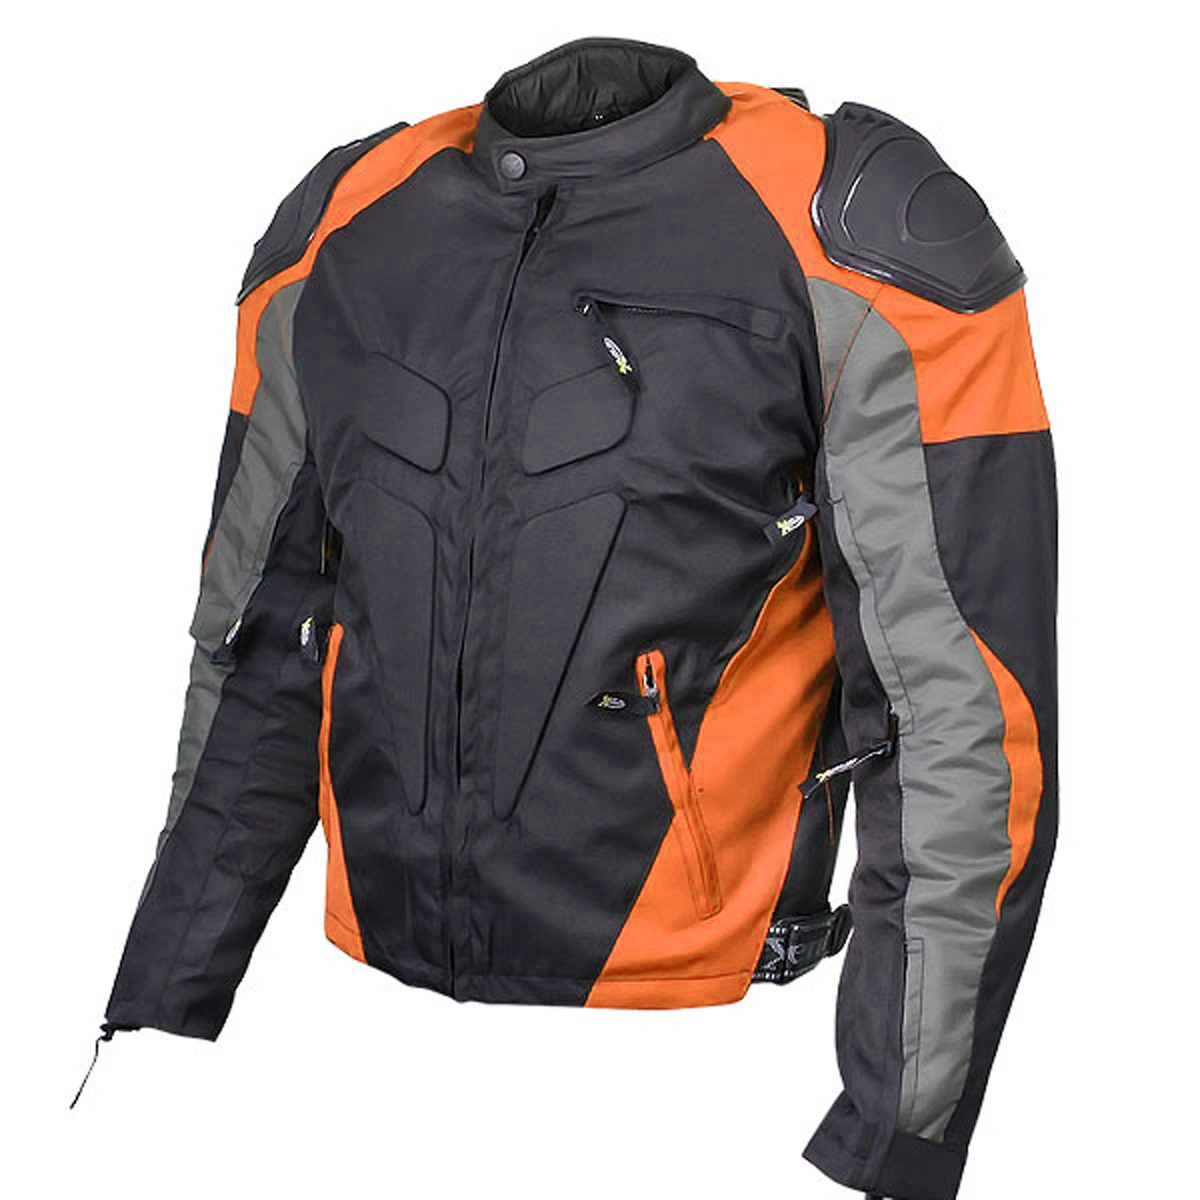 Xelement CF628 Mens Black Armored Textile Racing Jacket